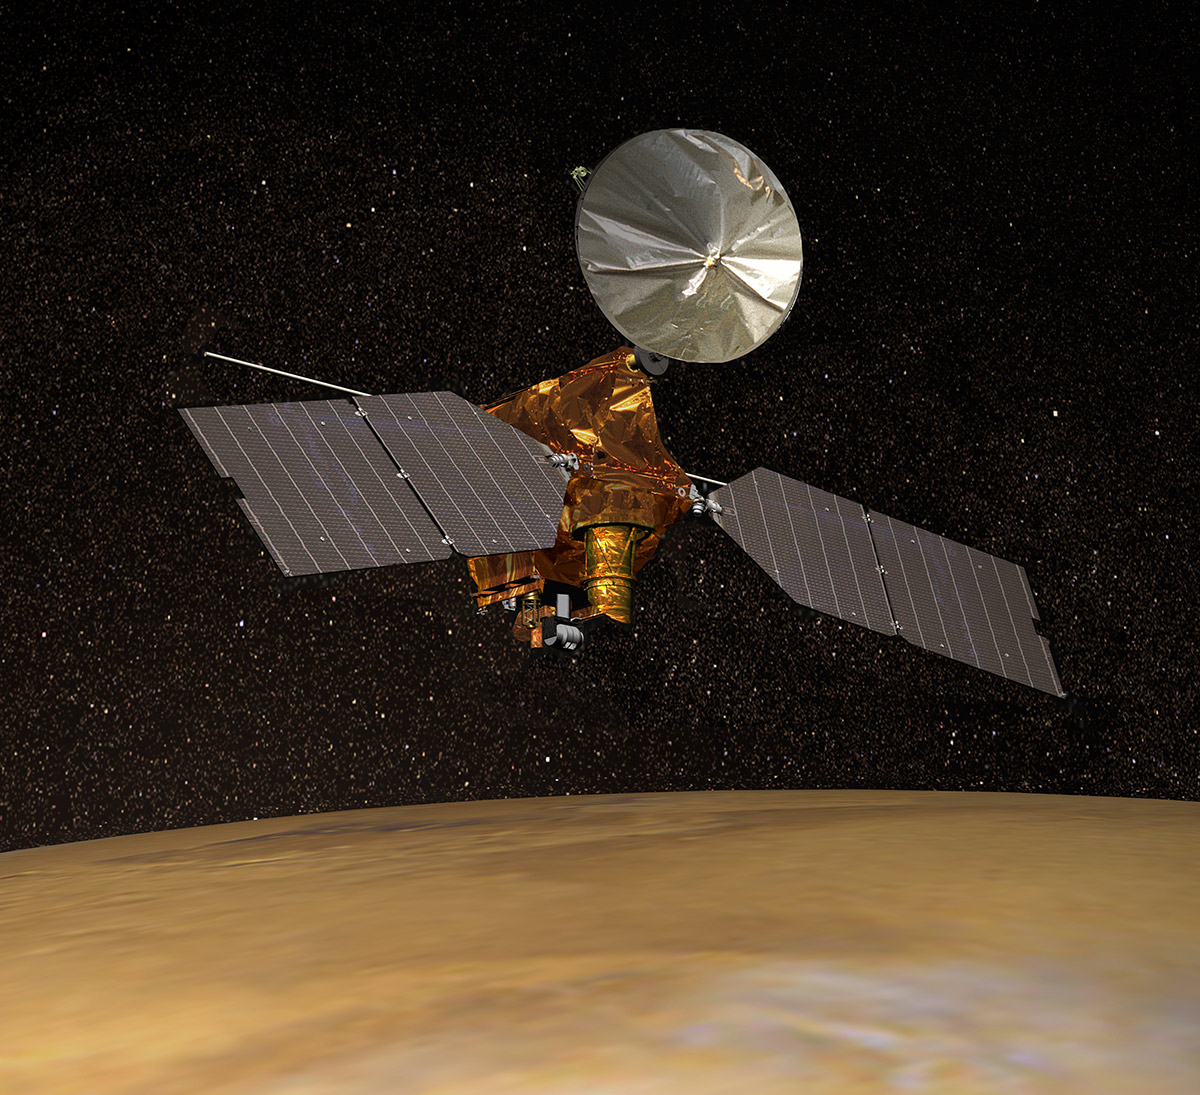 Artist's concept of NASA's Mars Reconnaissance Orbiter, depicted above Mars. | Wikimedia Commons/NASA/JPL/Corby Waste